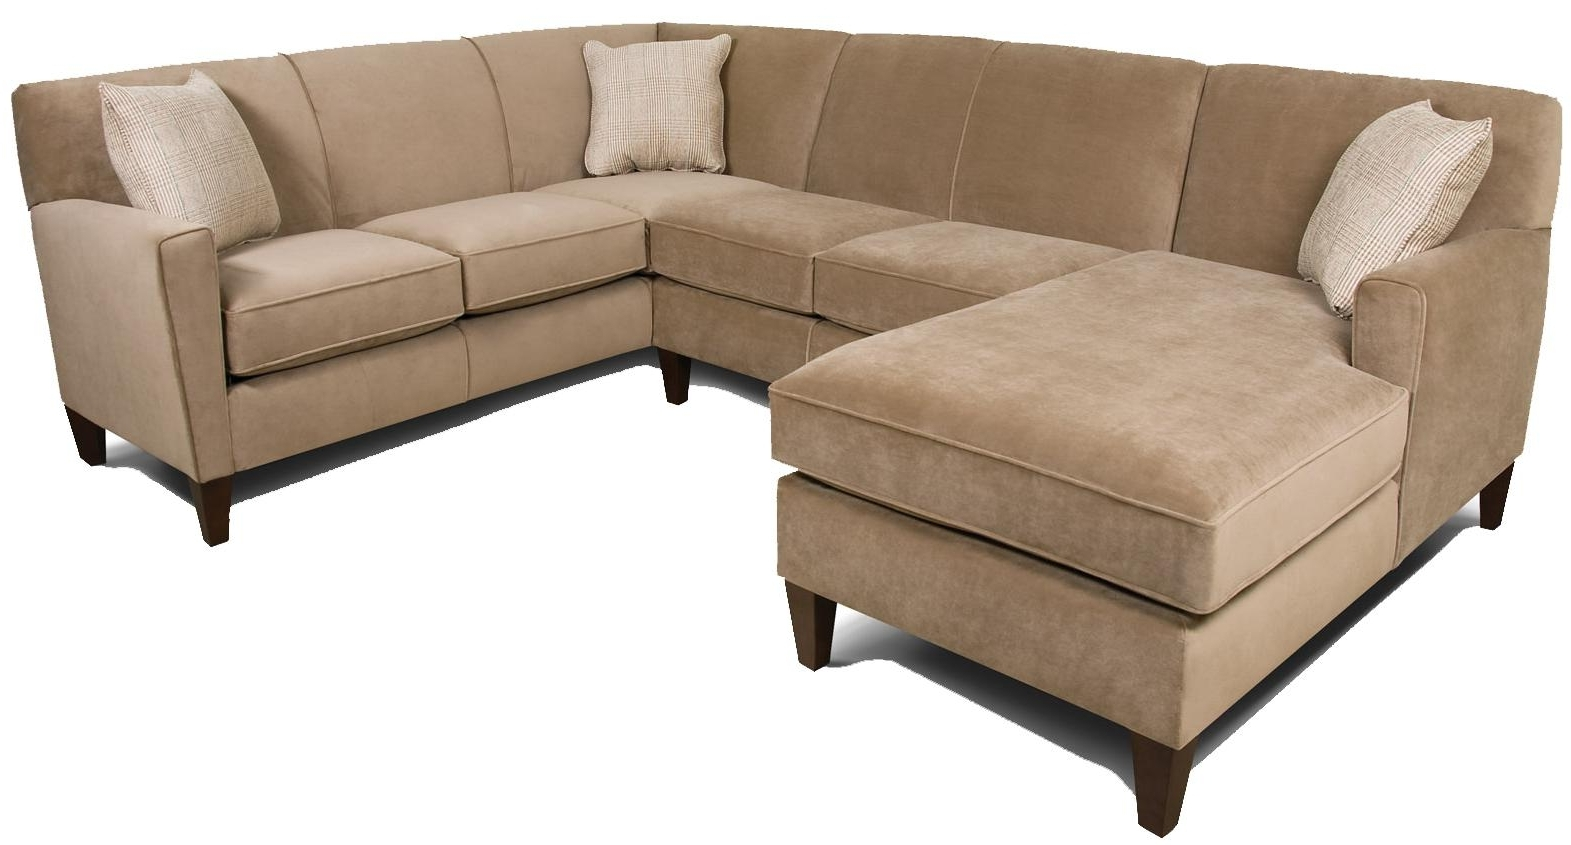 Popular England Collegedale Contemporary 3 Piece Sectional Sofa With Laf Regarding England Sectional Sofas (View 10 of 20)